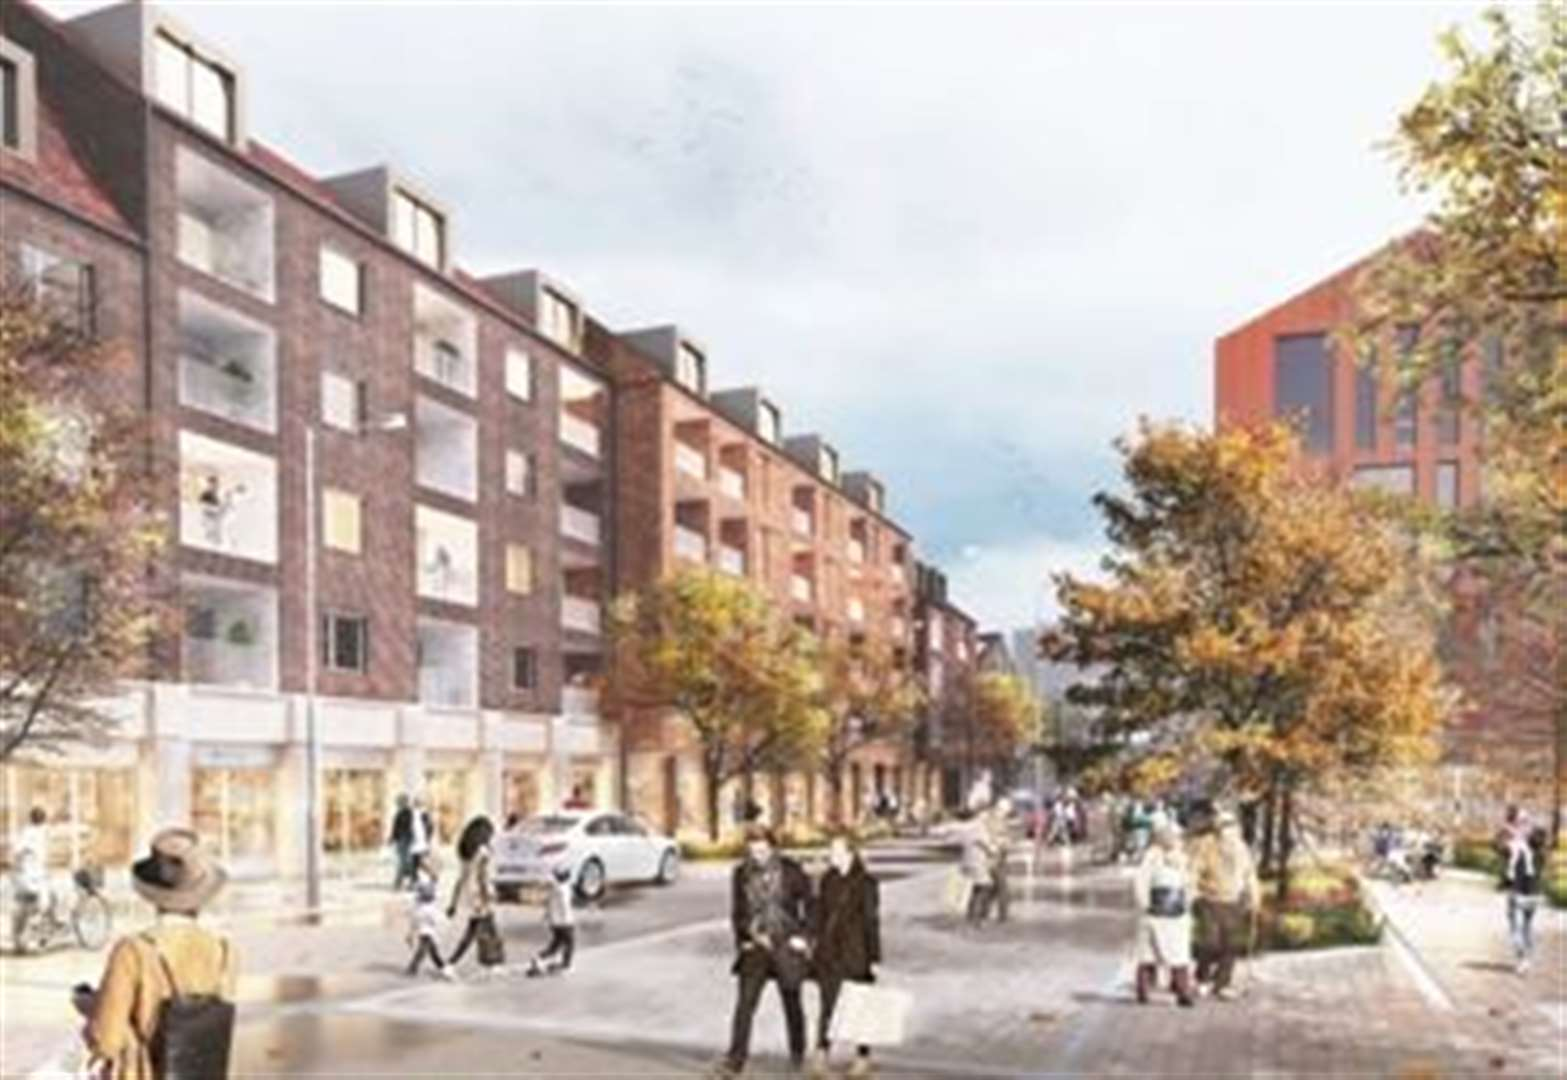 Second phase of flats to be built at Bishop's Stortford Goods Yard